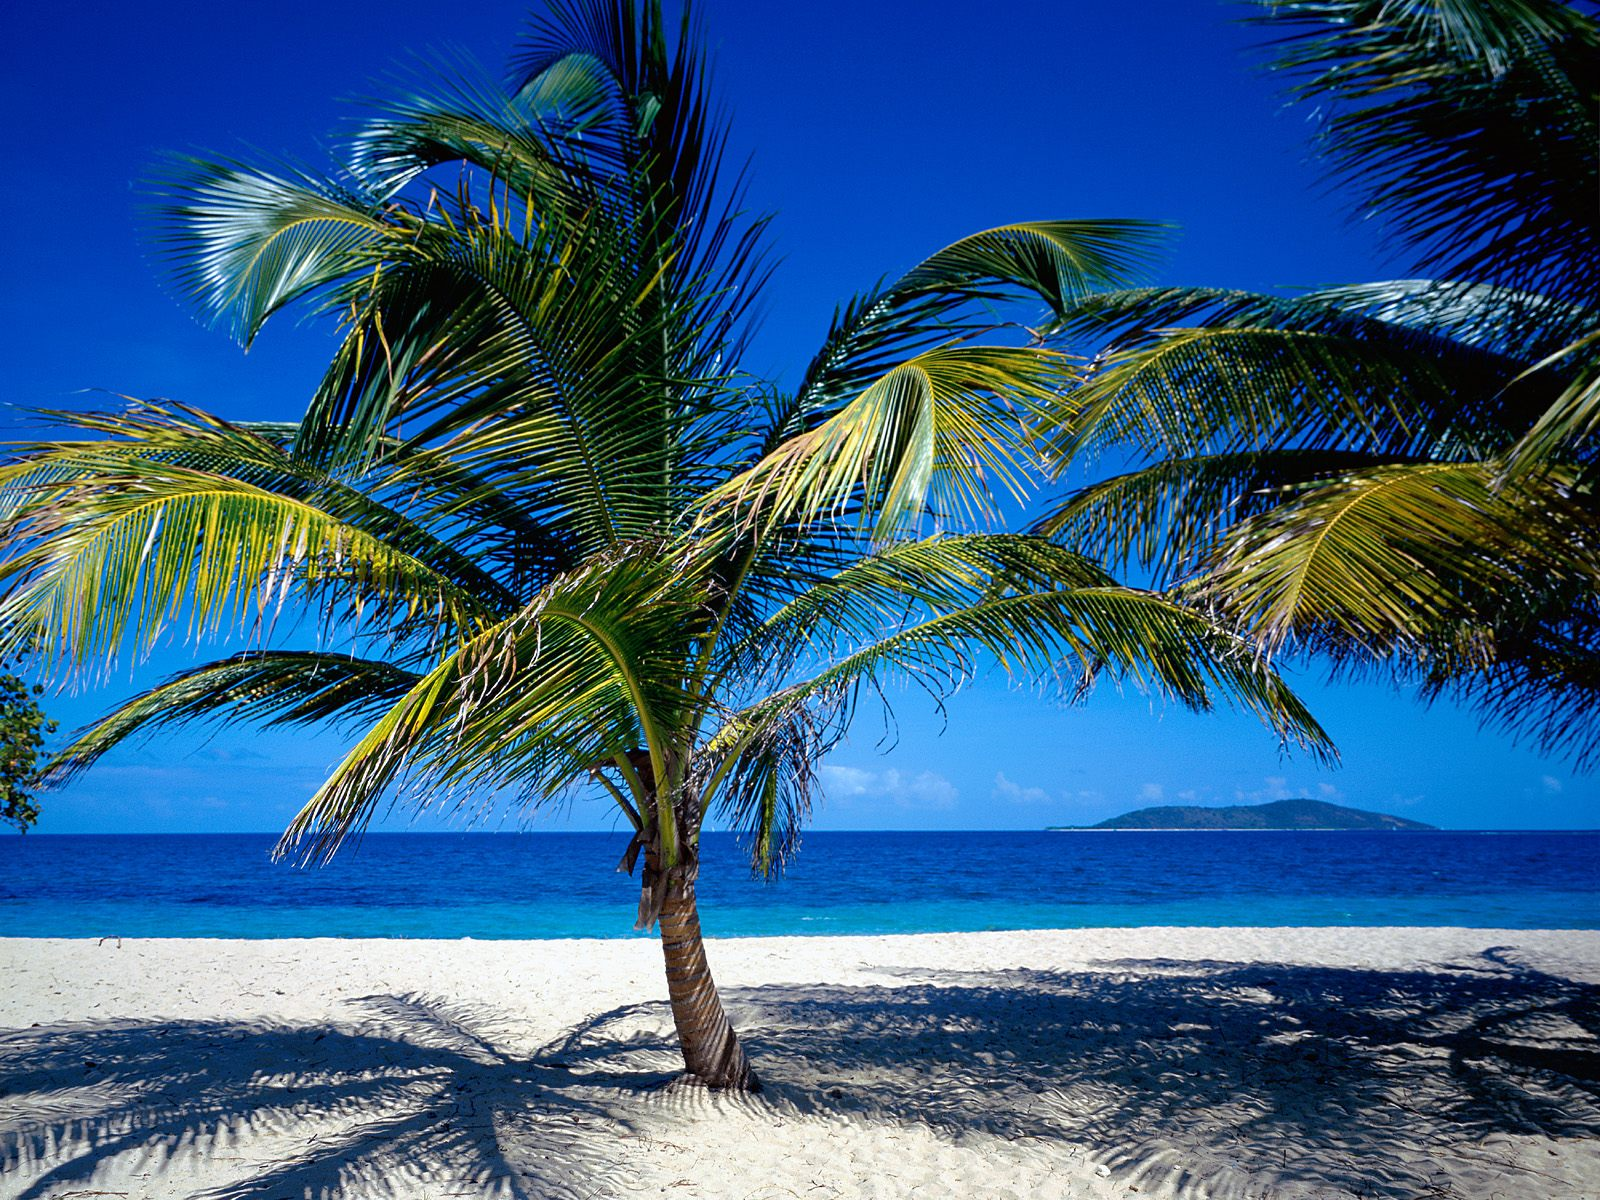 Beautiful Wallpaper Mac Palm Tree - low-palm-tree-on-the-beach_wallpapers_39455_1600x1200  You Should Have_632793.jpg